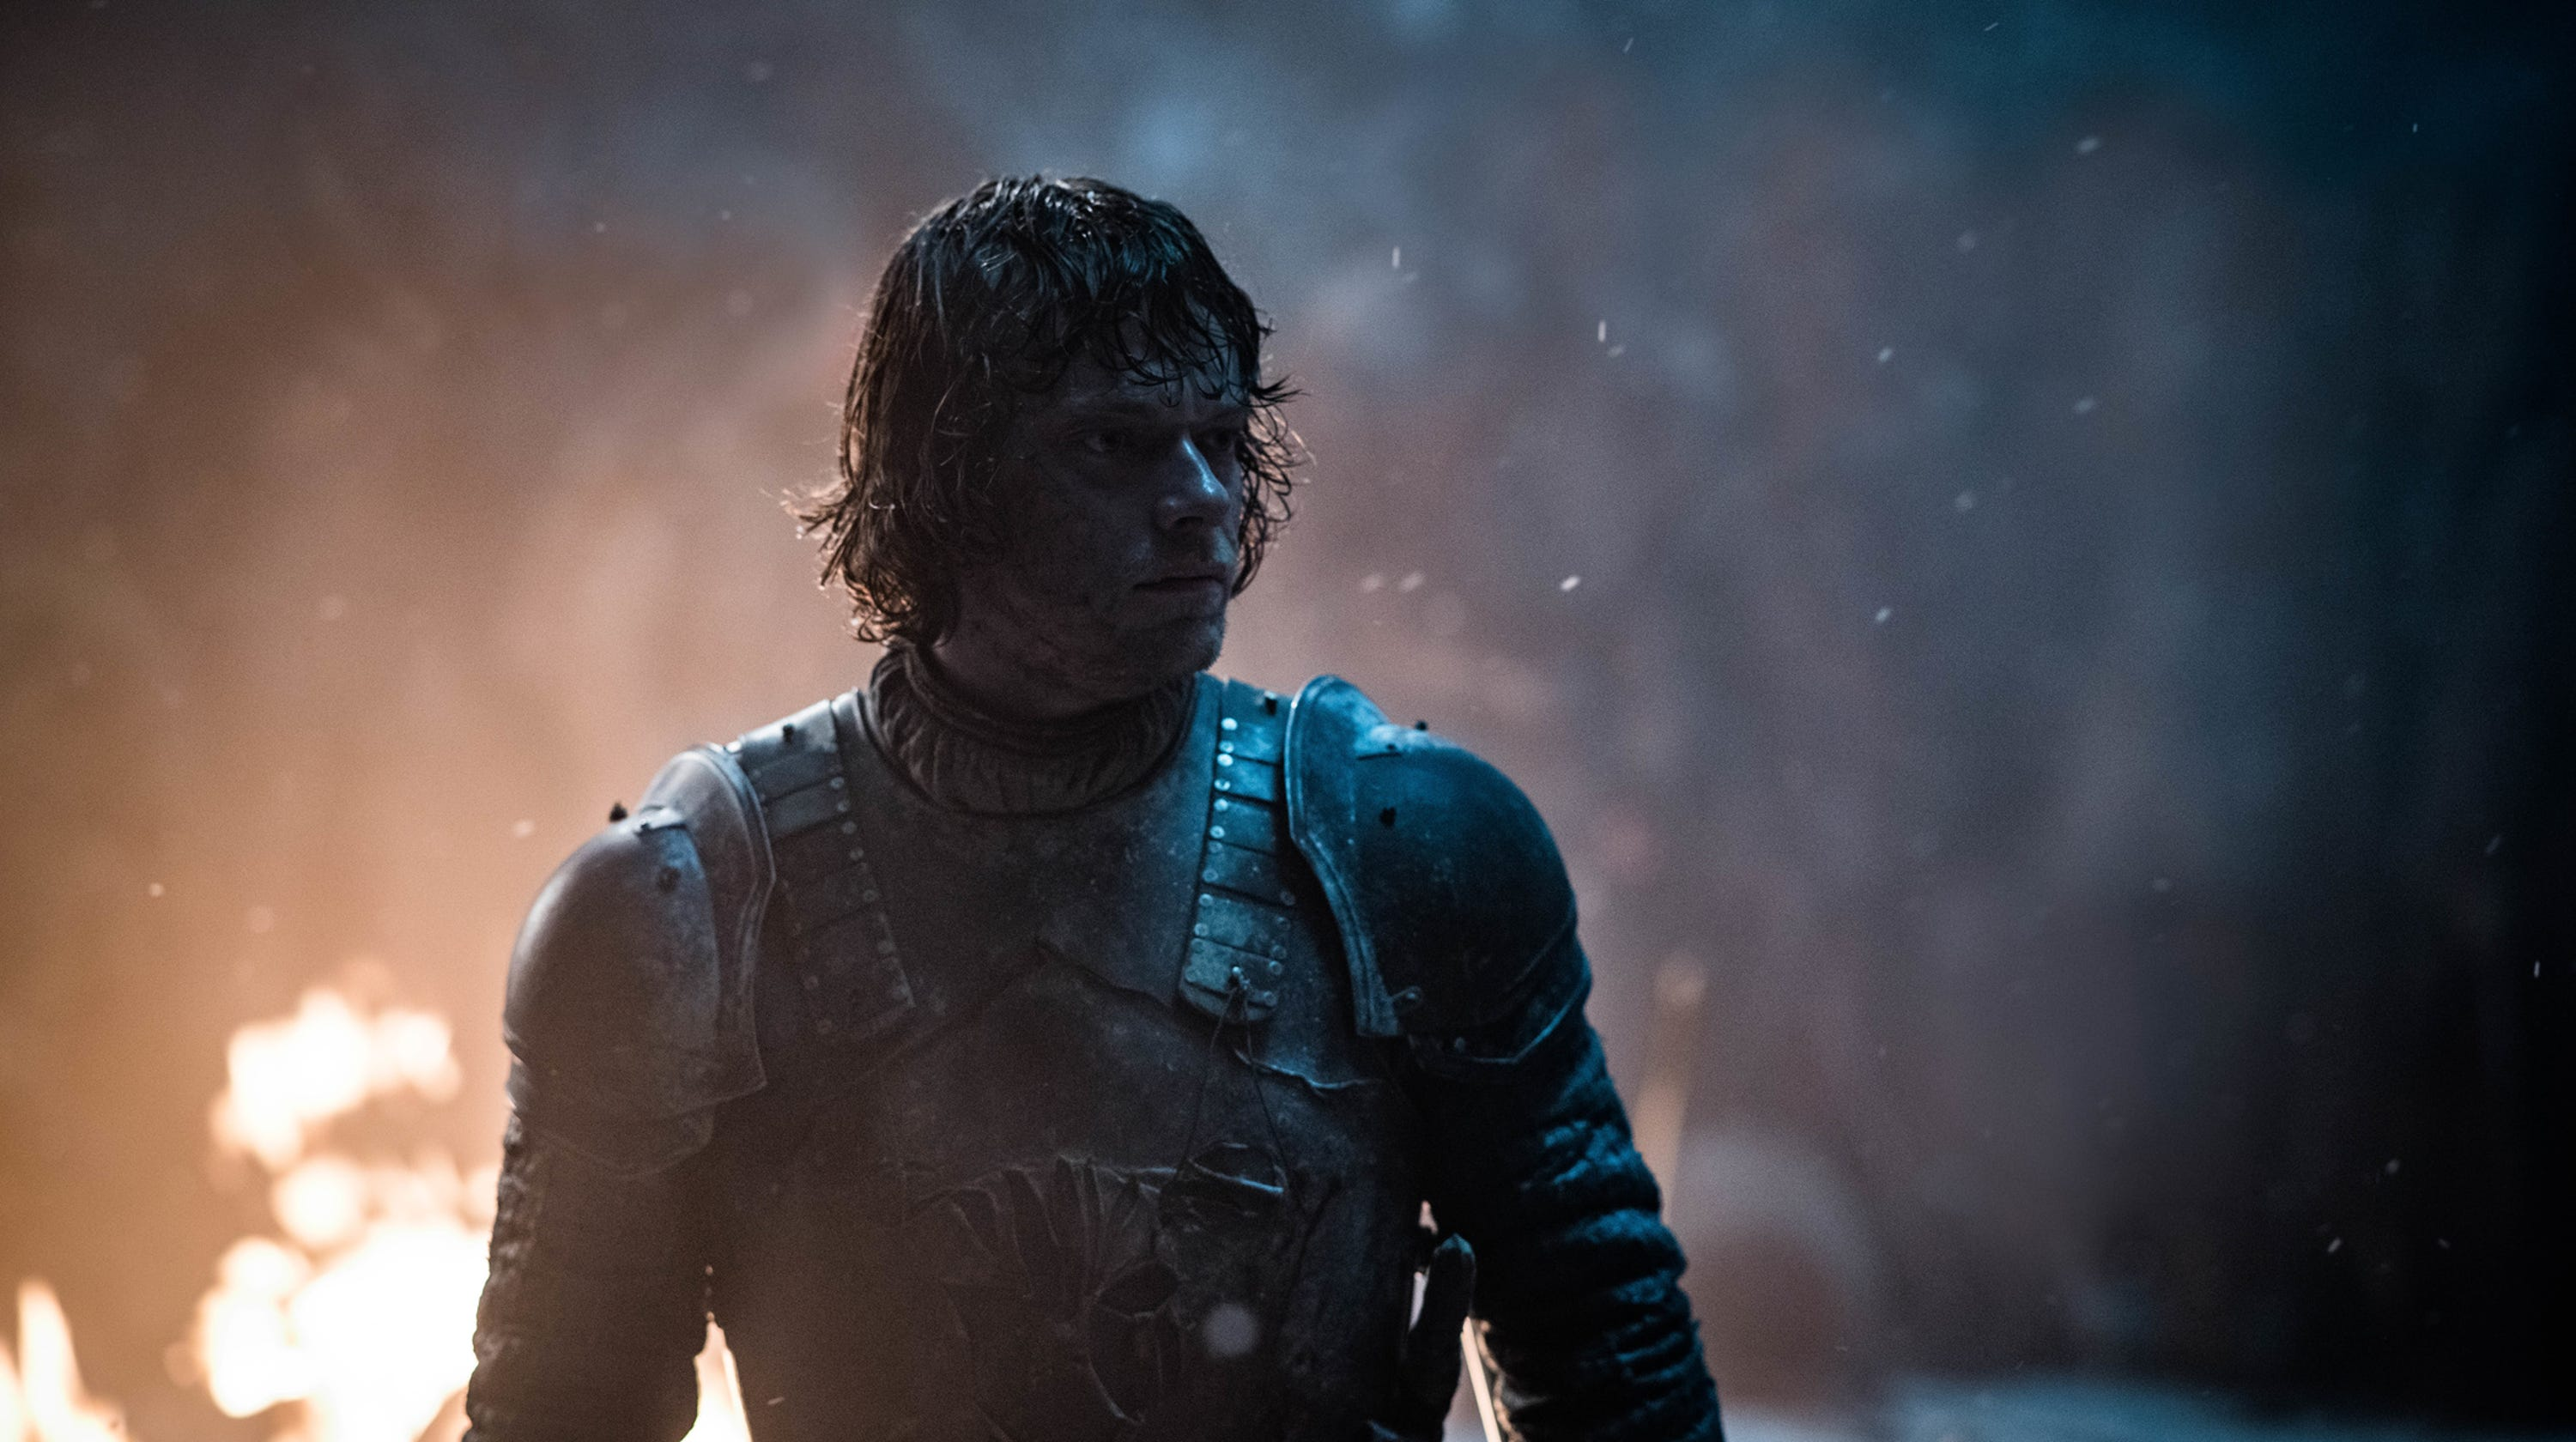 'Game of Thrones': Alfie Allen says he personally faced 'dark, dark moments' playing Theon